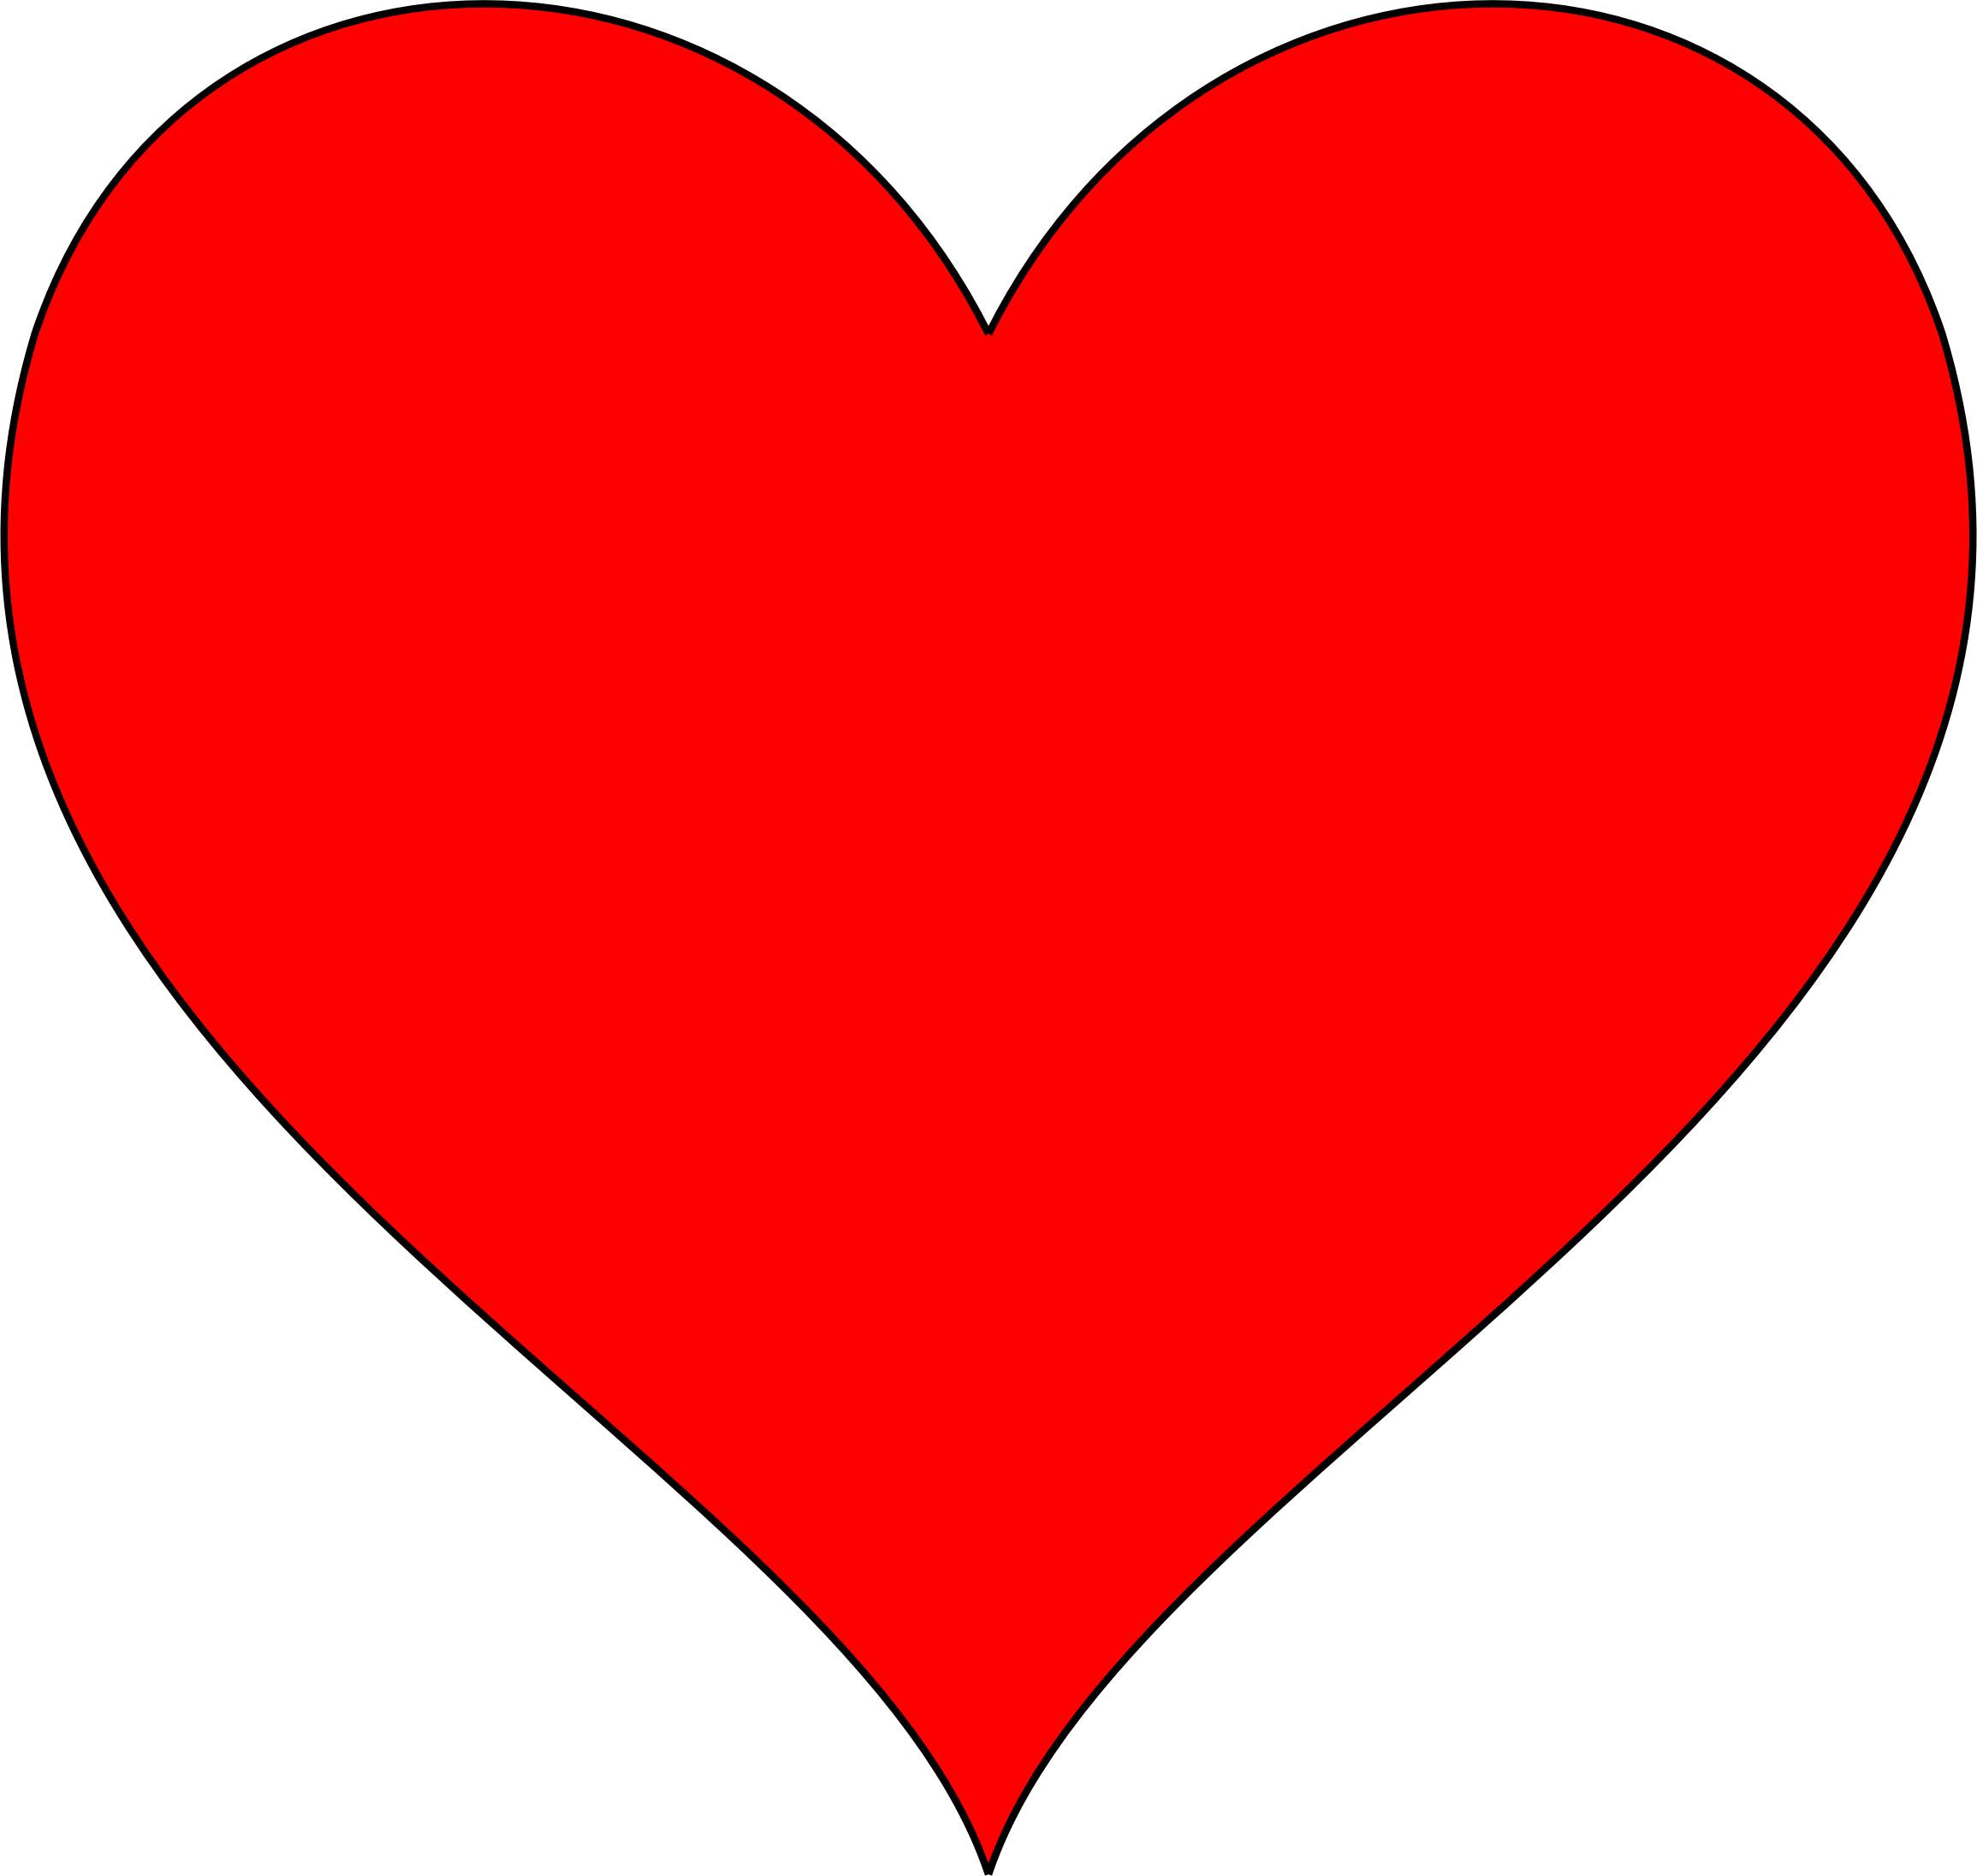 Free photo heart sign. Words clipart love